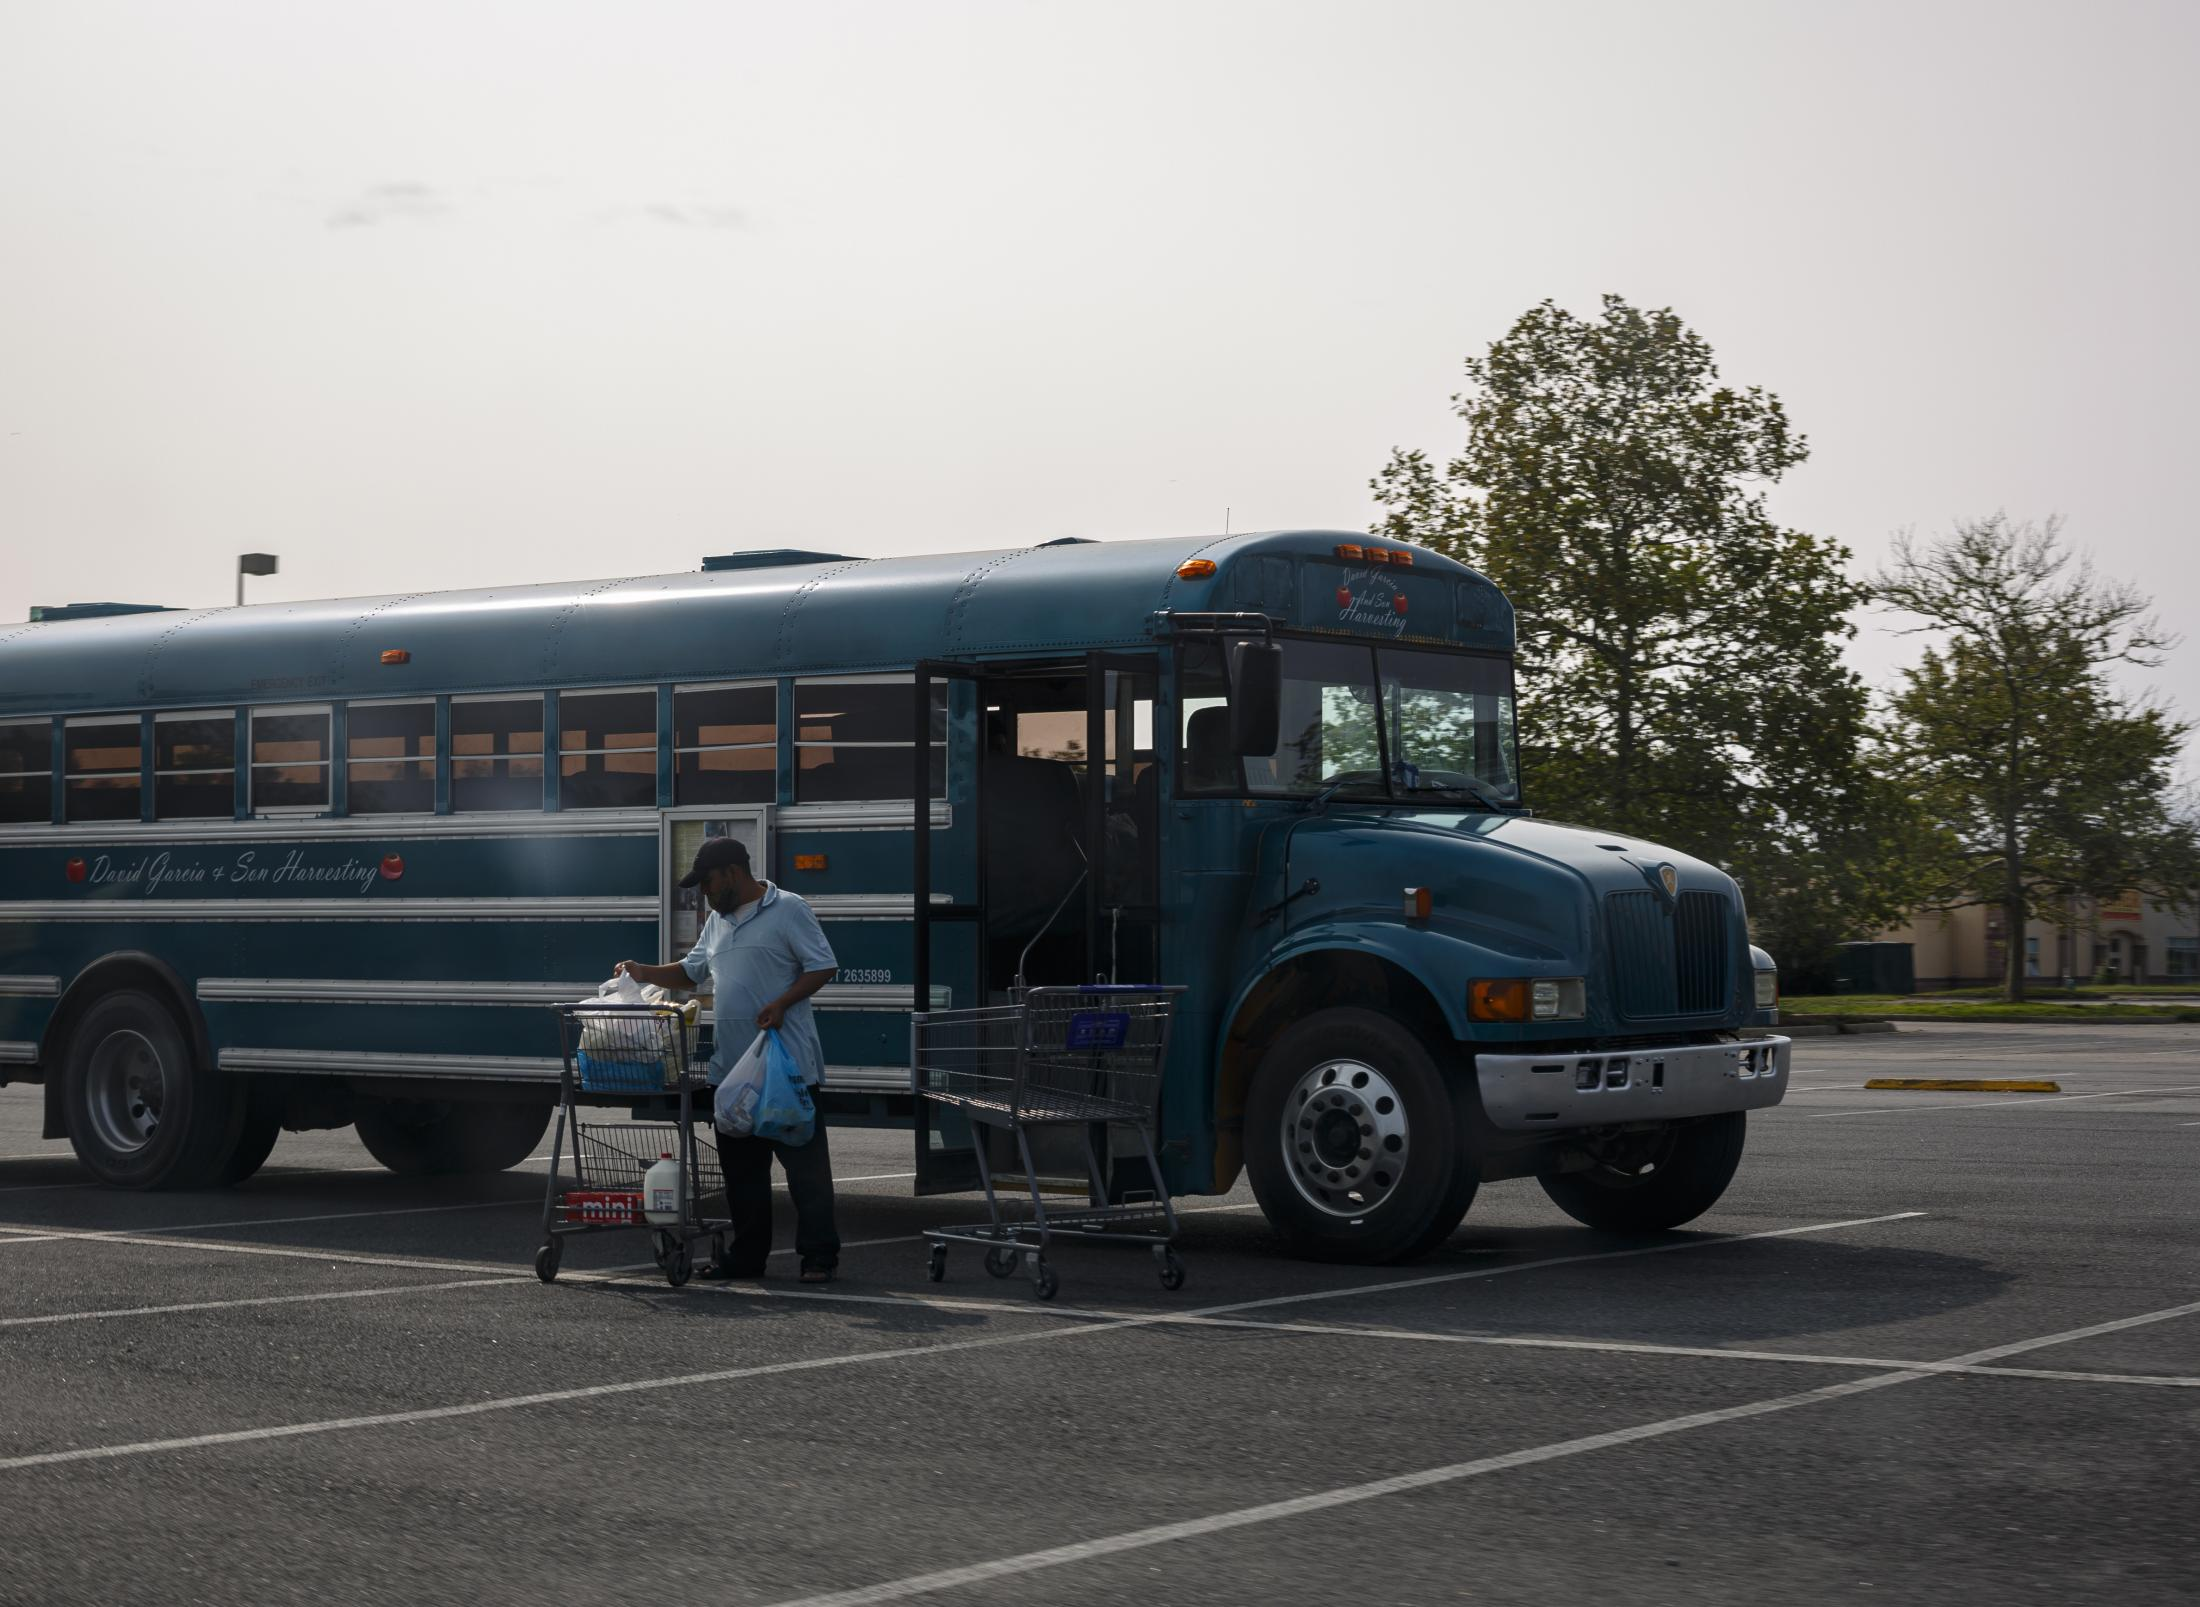 CHERITON, VA – September 9, 2020: Seasonal farmworkers being brought in buses from the barracks where they live to the Food Lion at Cape Charles, VA to buy groceries. Seasonal farmworkers are brought by the thousands to toil in the tomato fields, since the start of the covid-19 pandemic, their conditions have worsened. Photo: Carlos Bernate for The New York Times